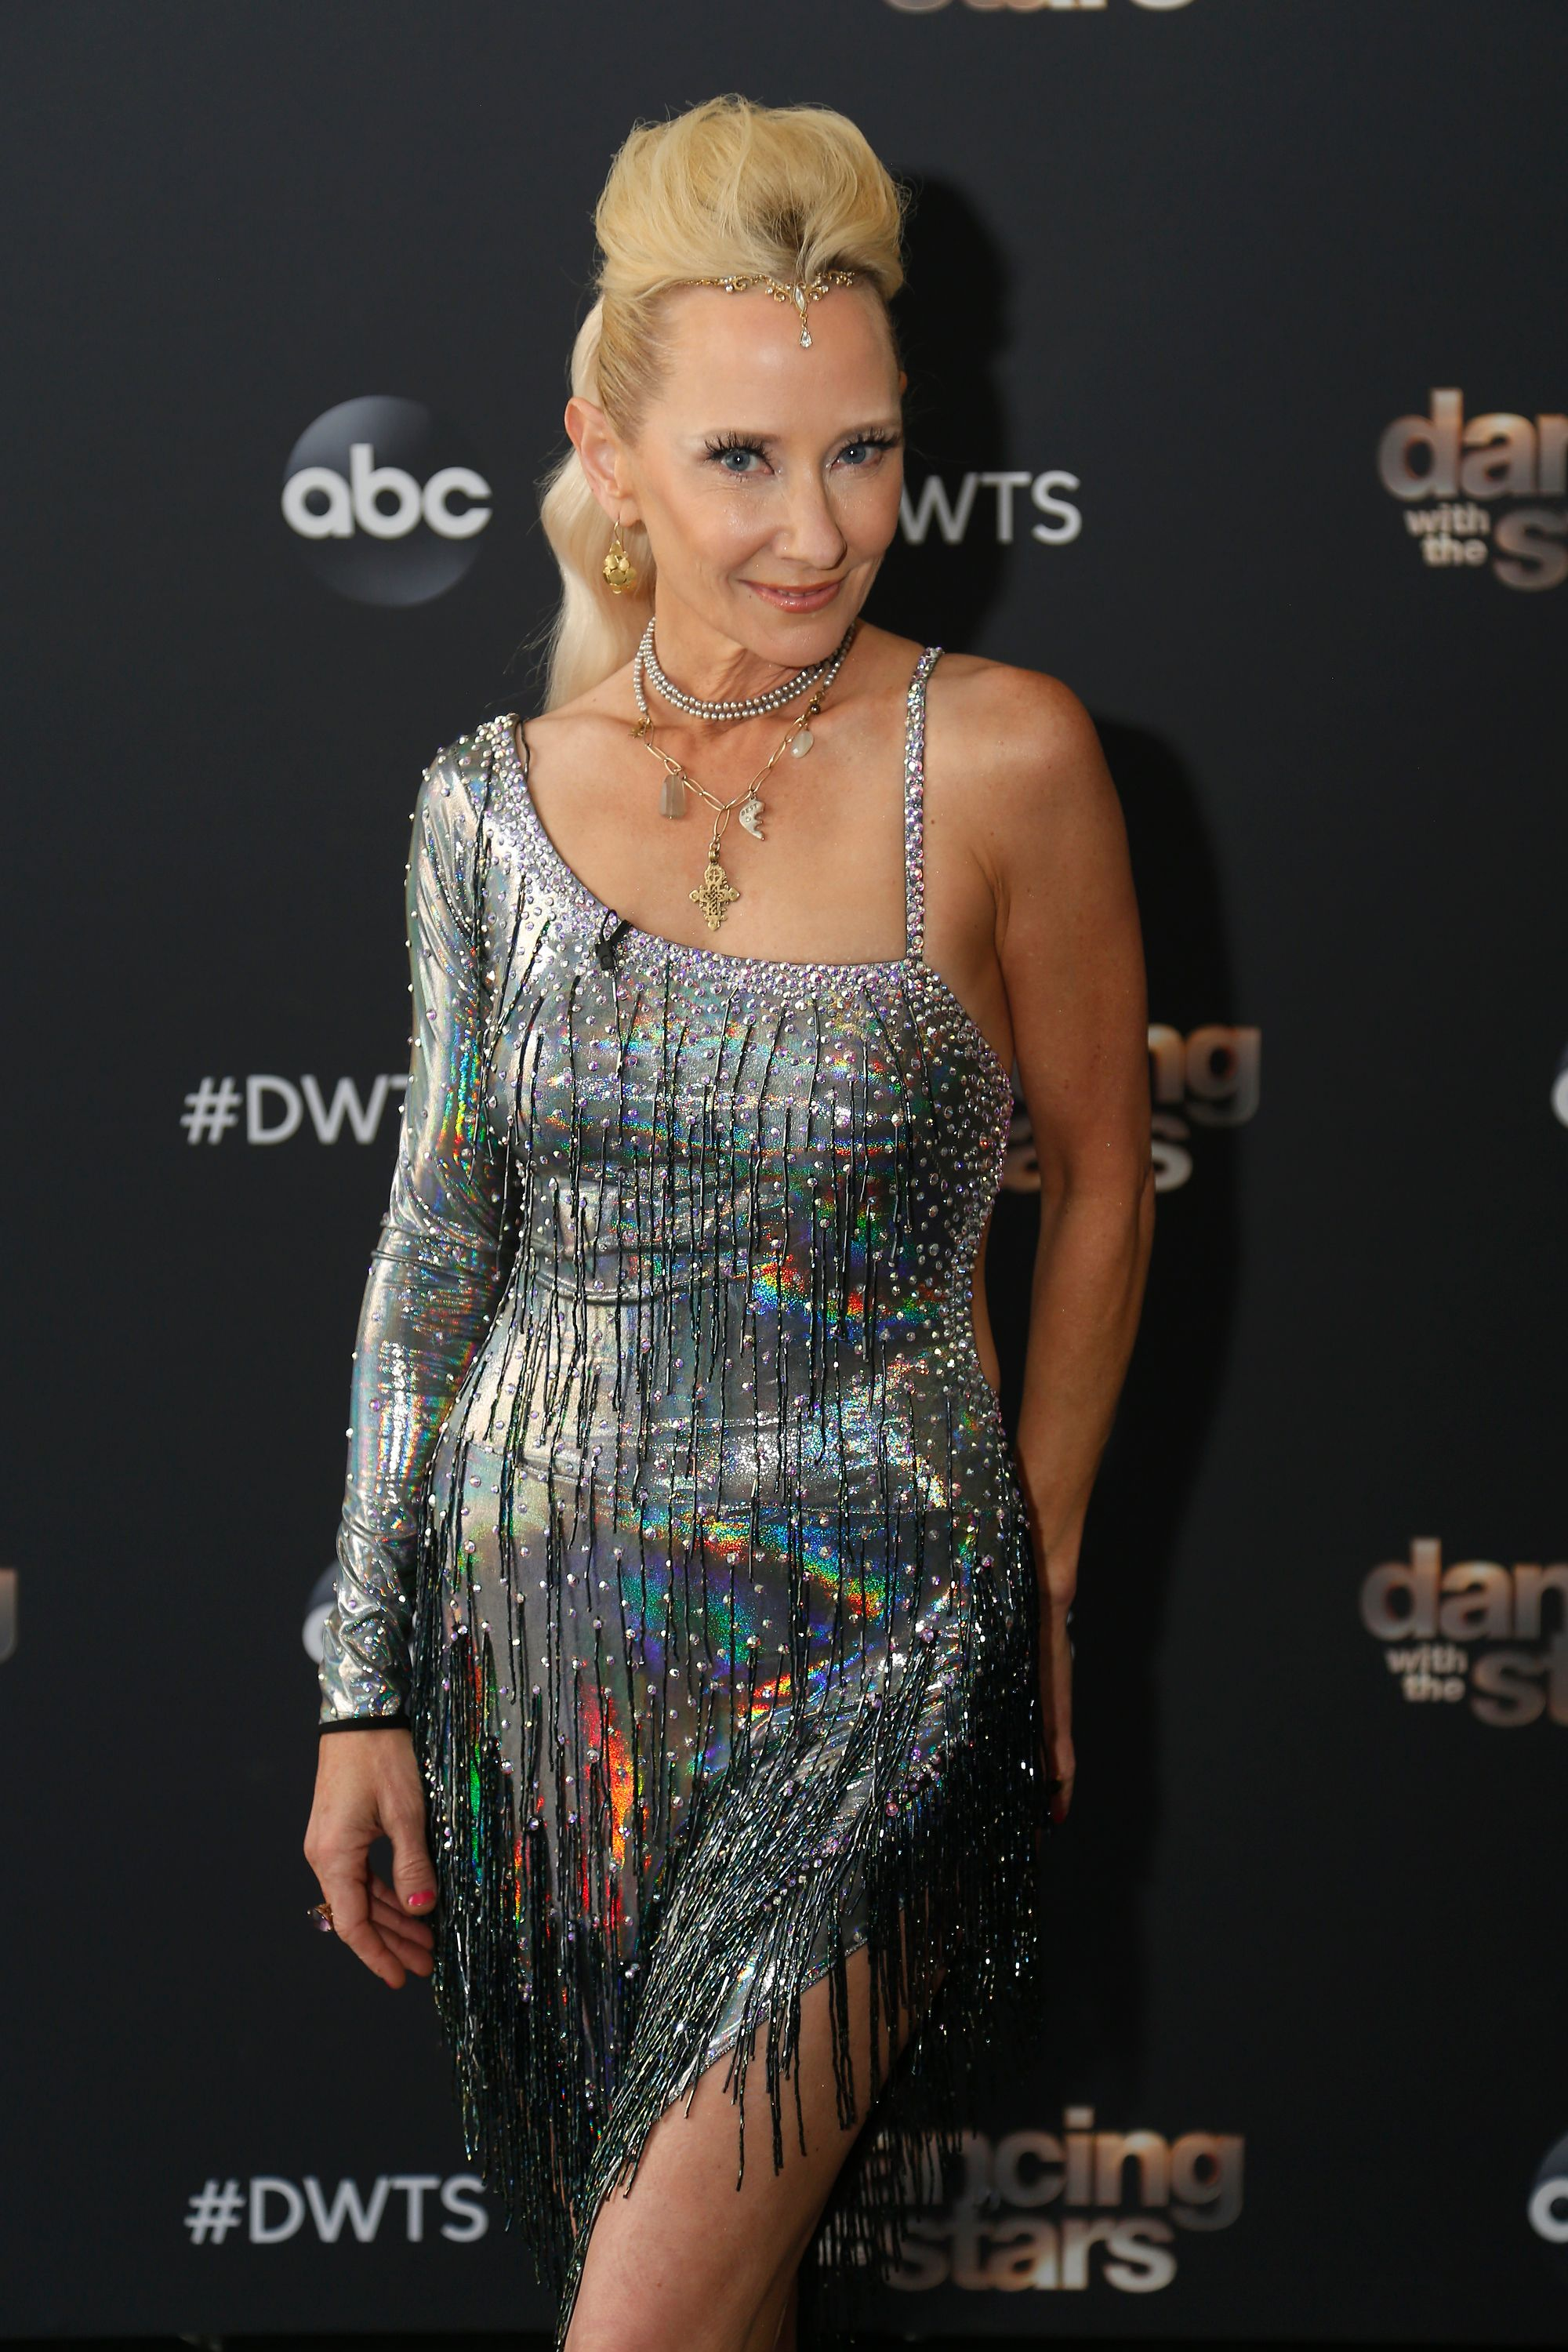 """Anne Heche at the premiere of """"Dancing with the Stars"""" on September 14, 2020 